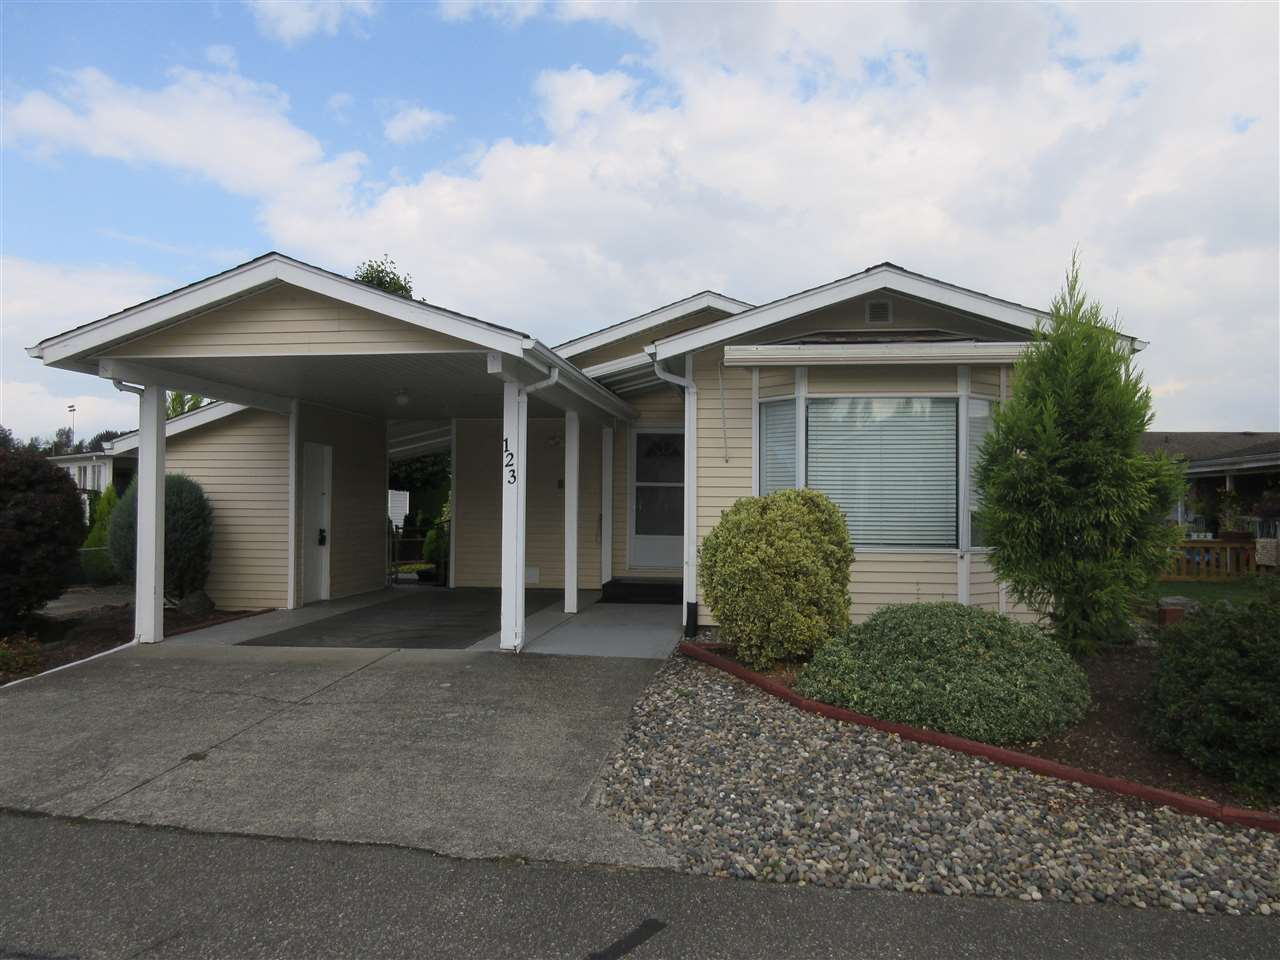 Main Photo: 123 9055 ASHWELL Road in Chilliwack: Chilliwack W Young-Well Manufactured Home for sale : MLS®# R2302198